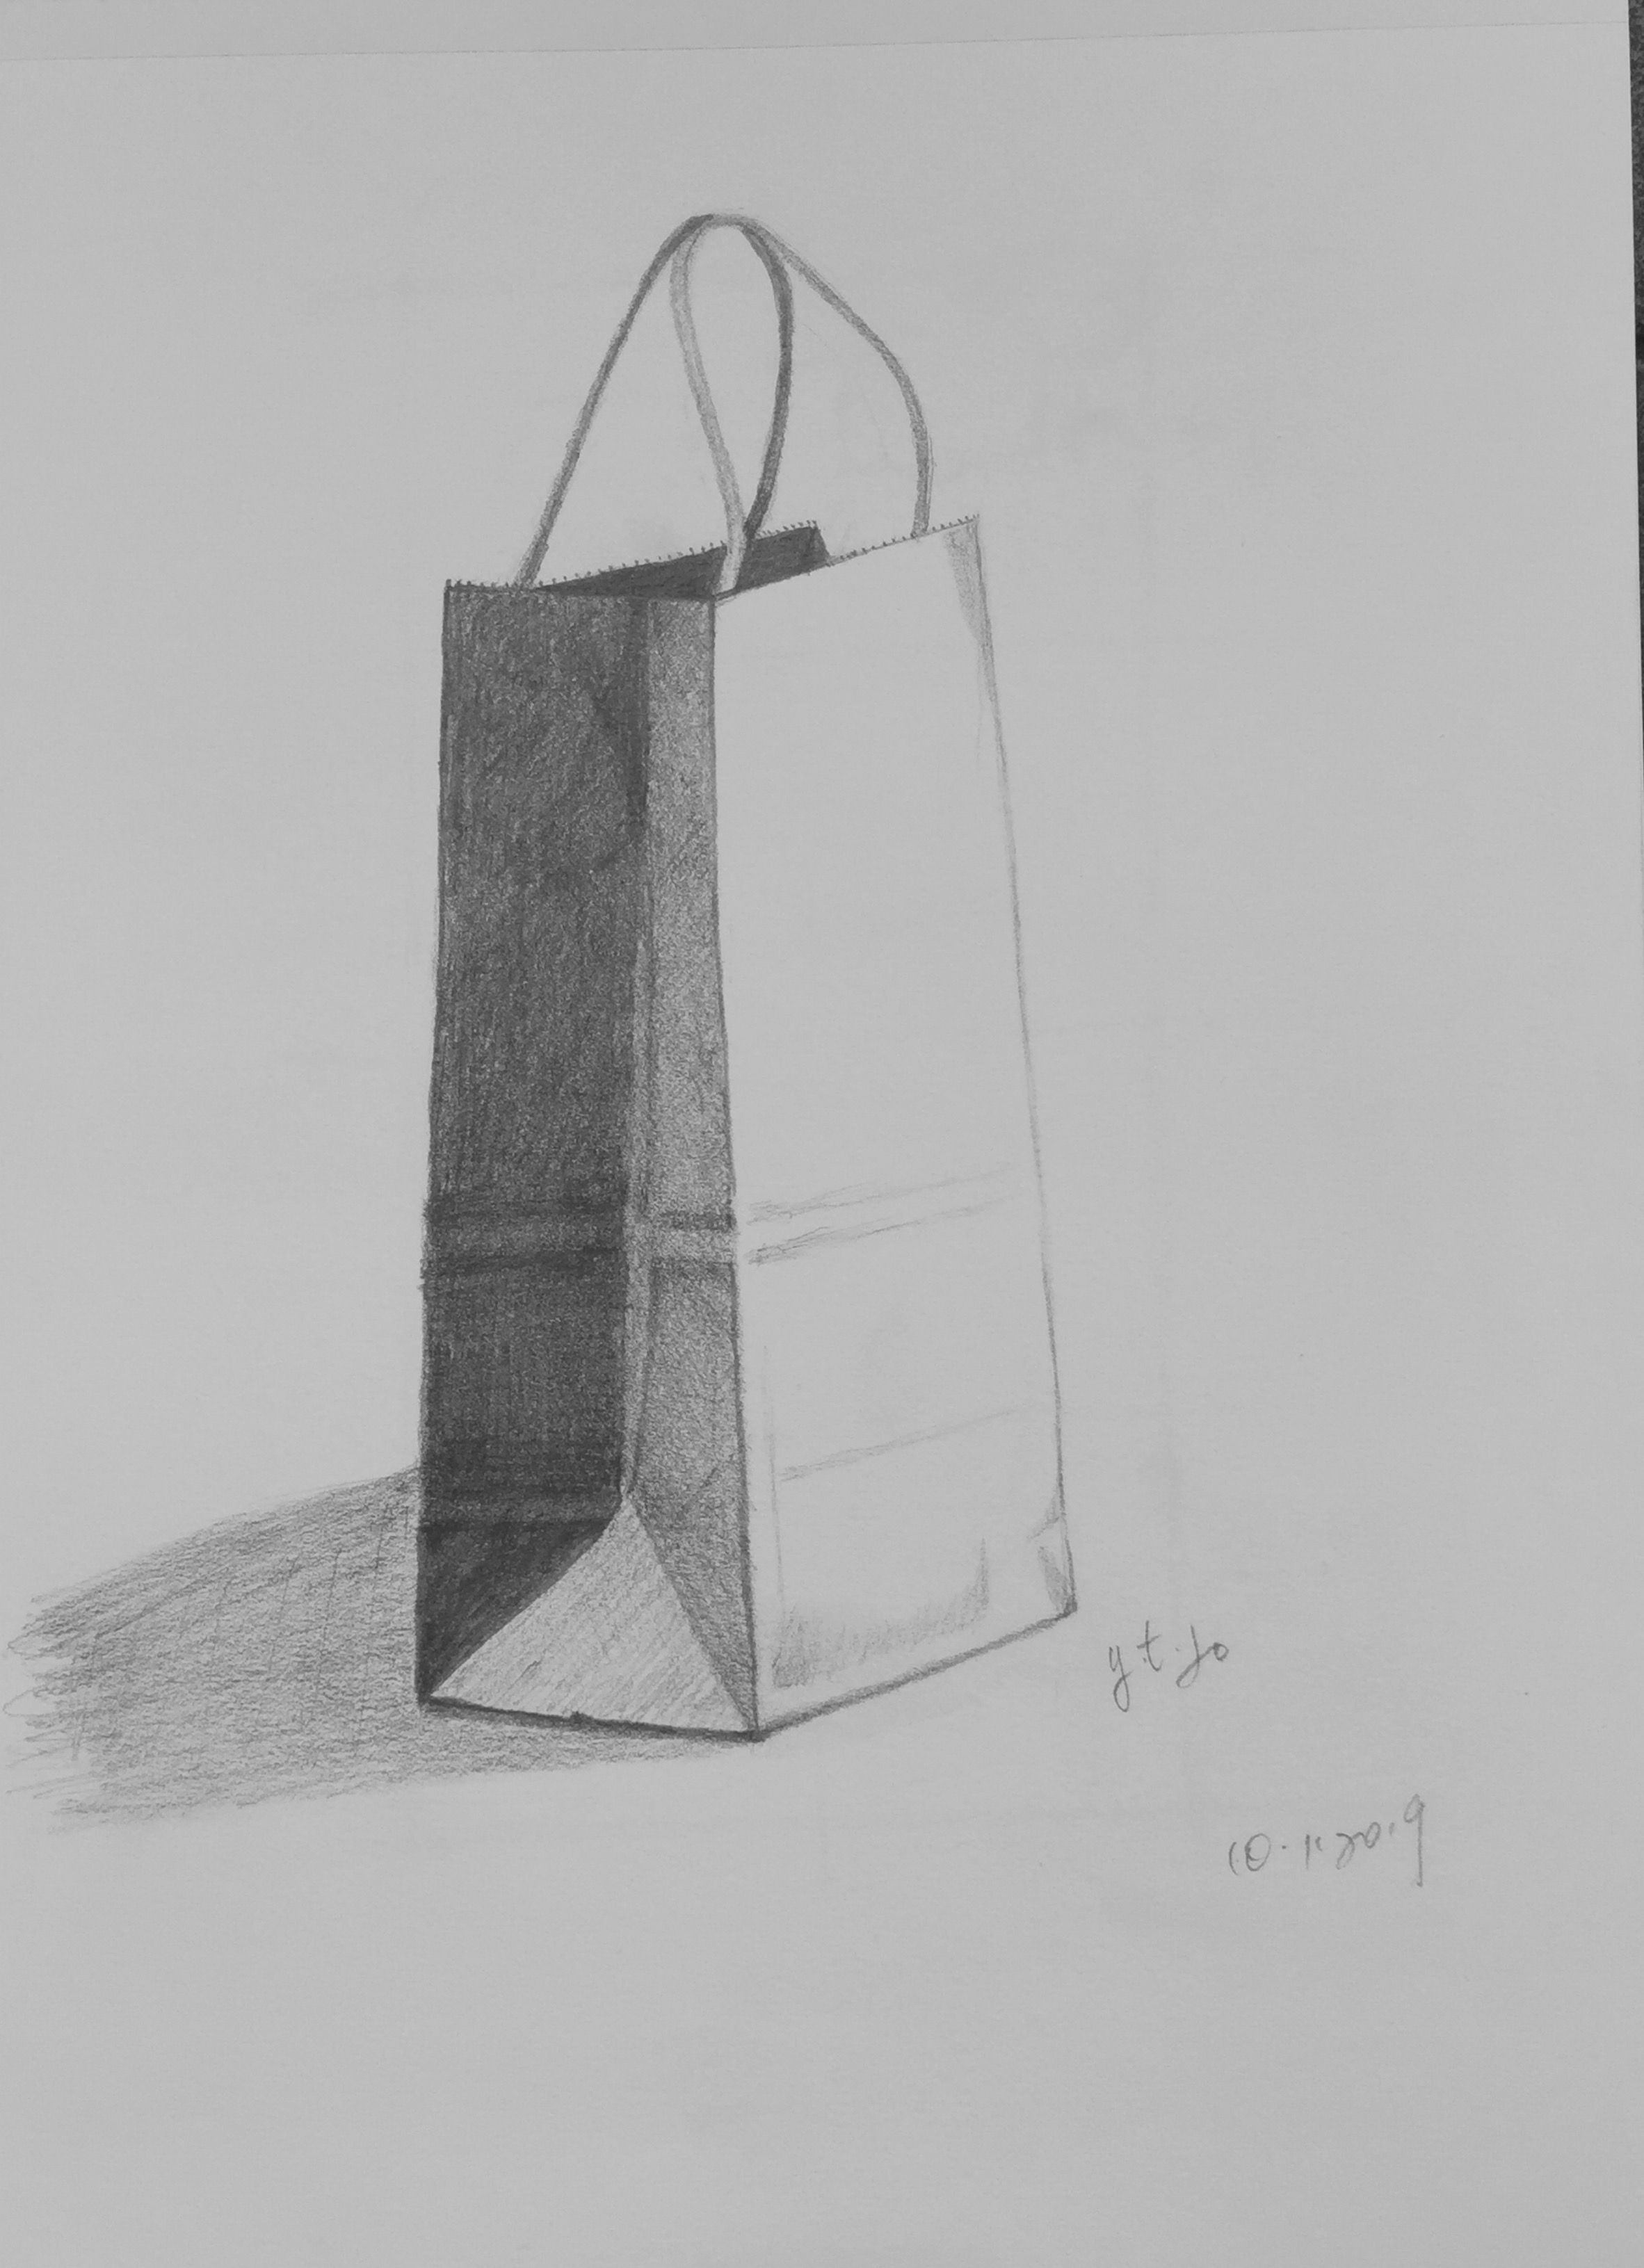 A plain paper bag sketch notes